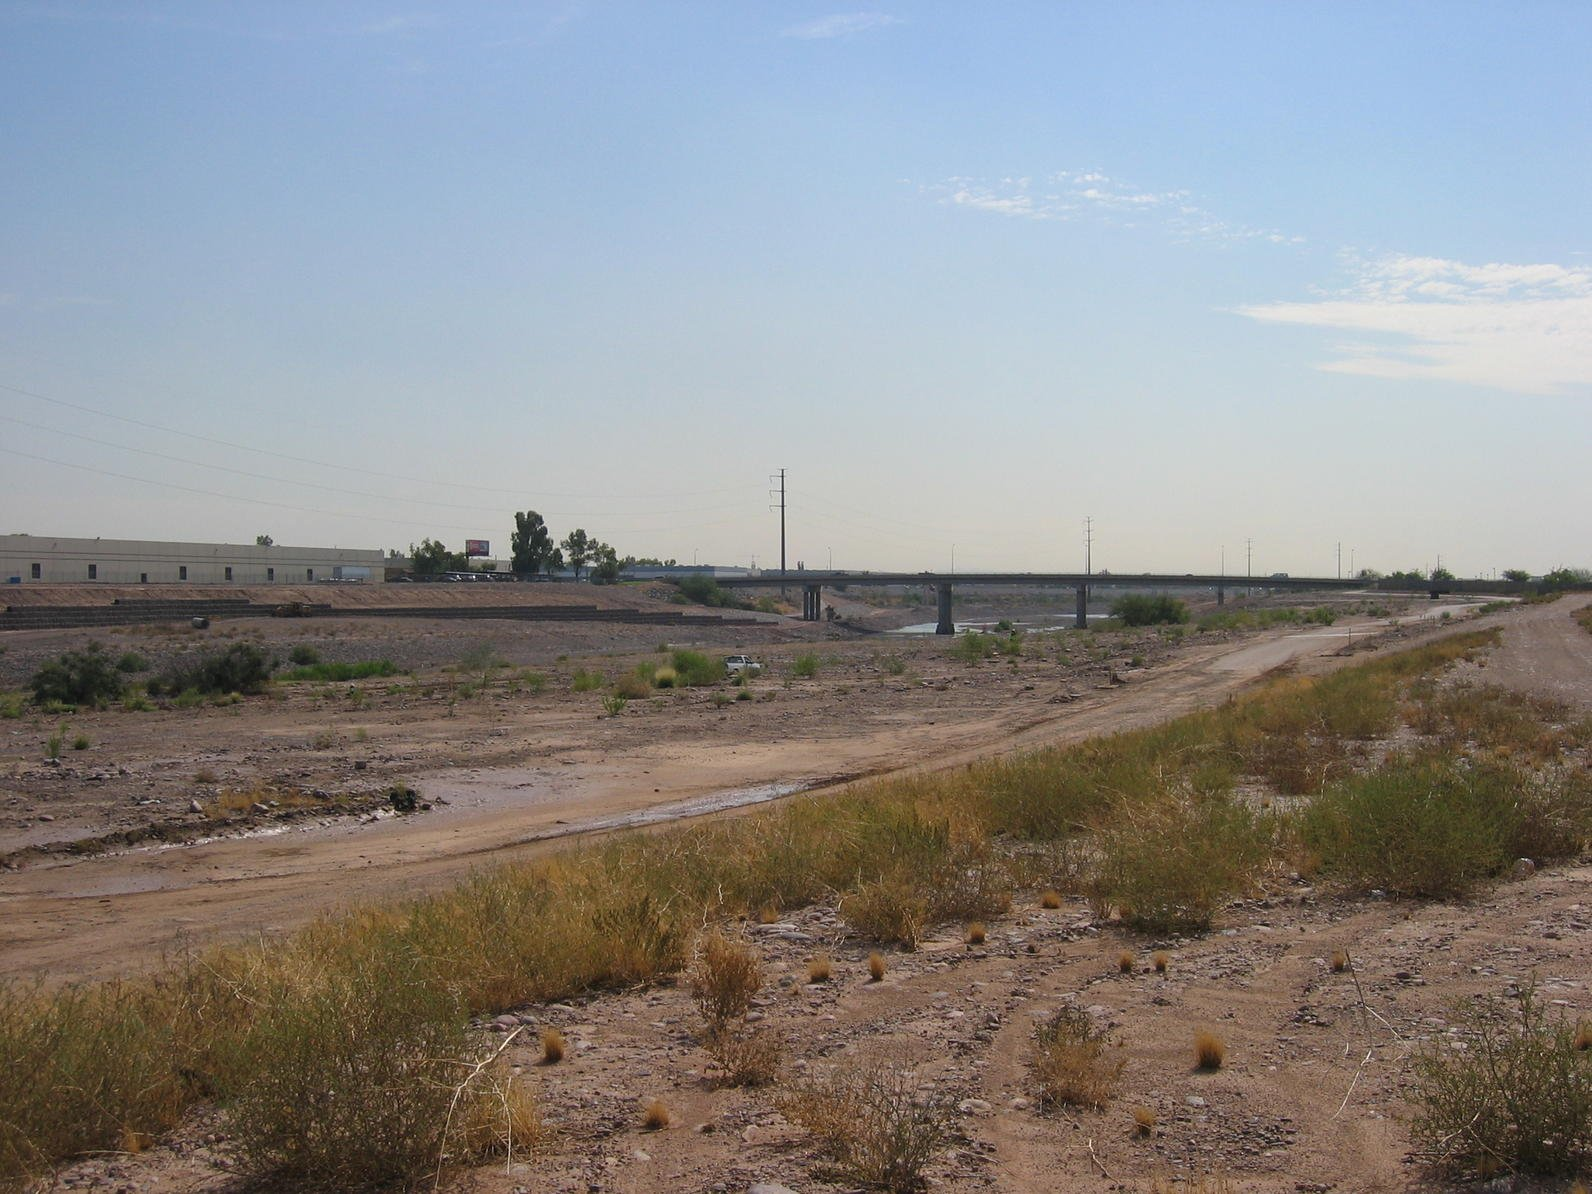 The Salt River near Mesa is often pretty dry nowadays. (Source: Rio Salado Project)